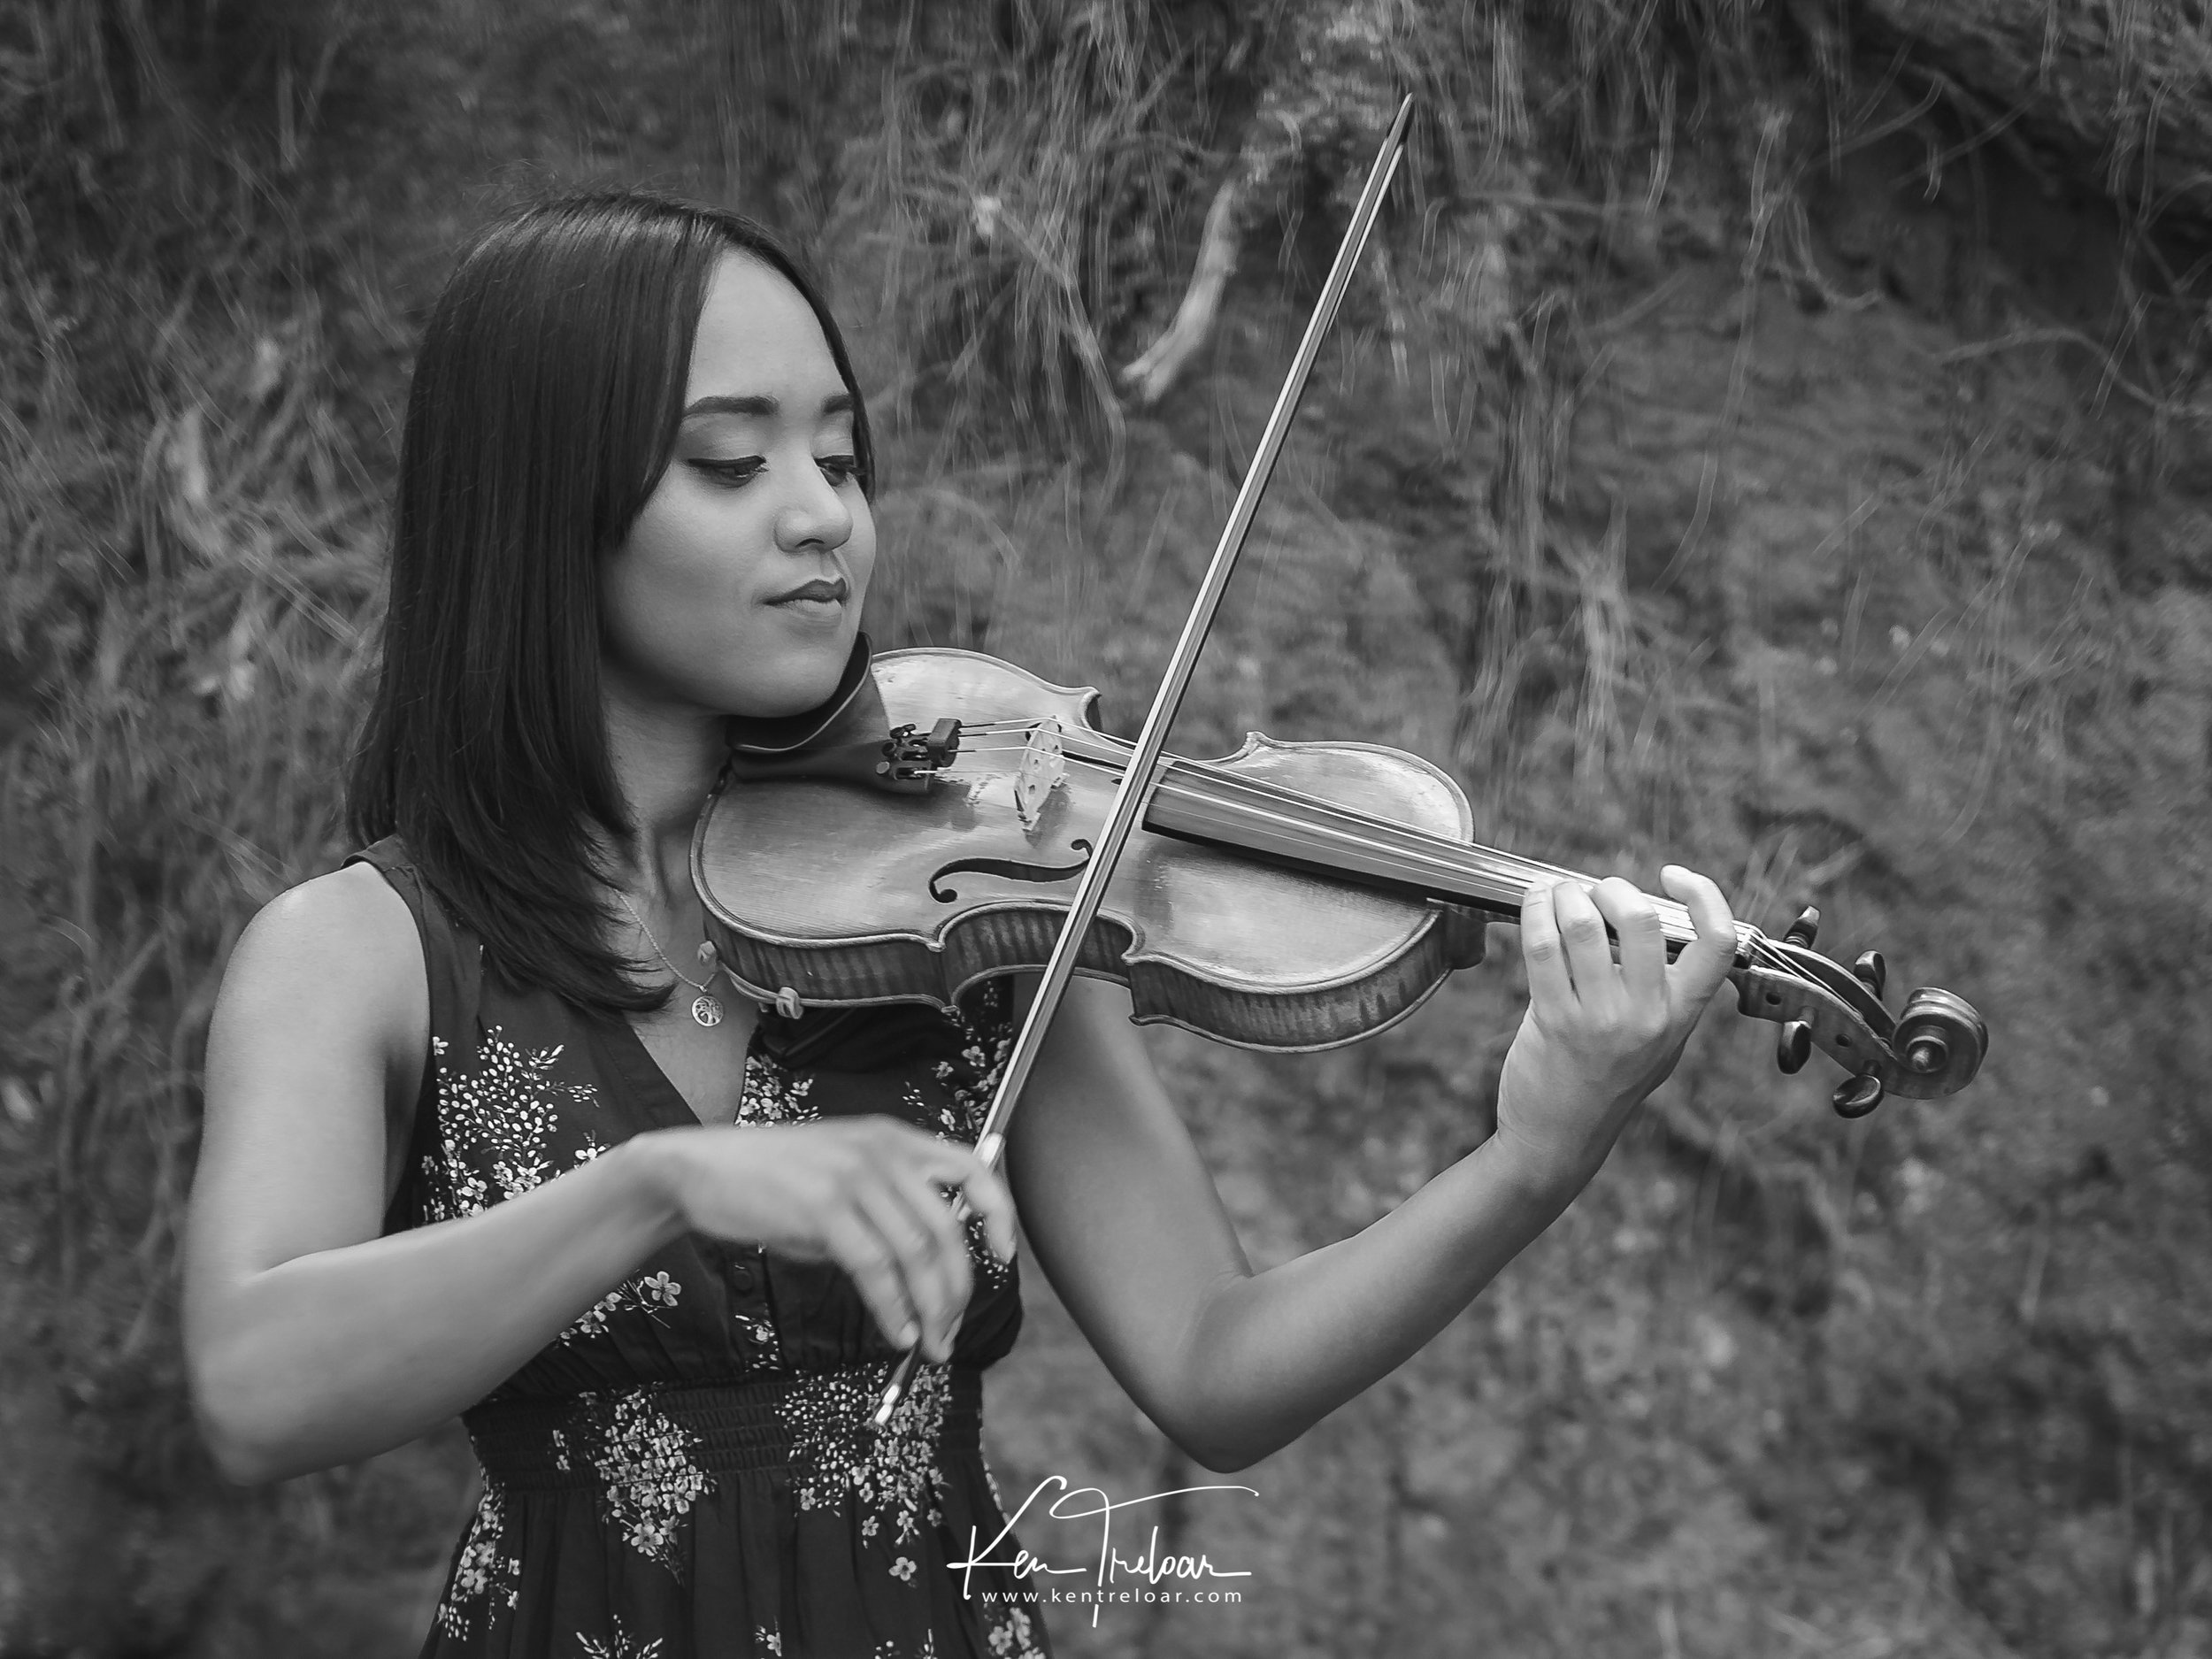 Ken Treloar Photography - Dec 2018 - Violin Woodland Forest Natural Light Portrait Photography - Cape Town-6.jpg